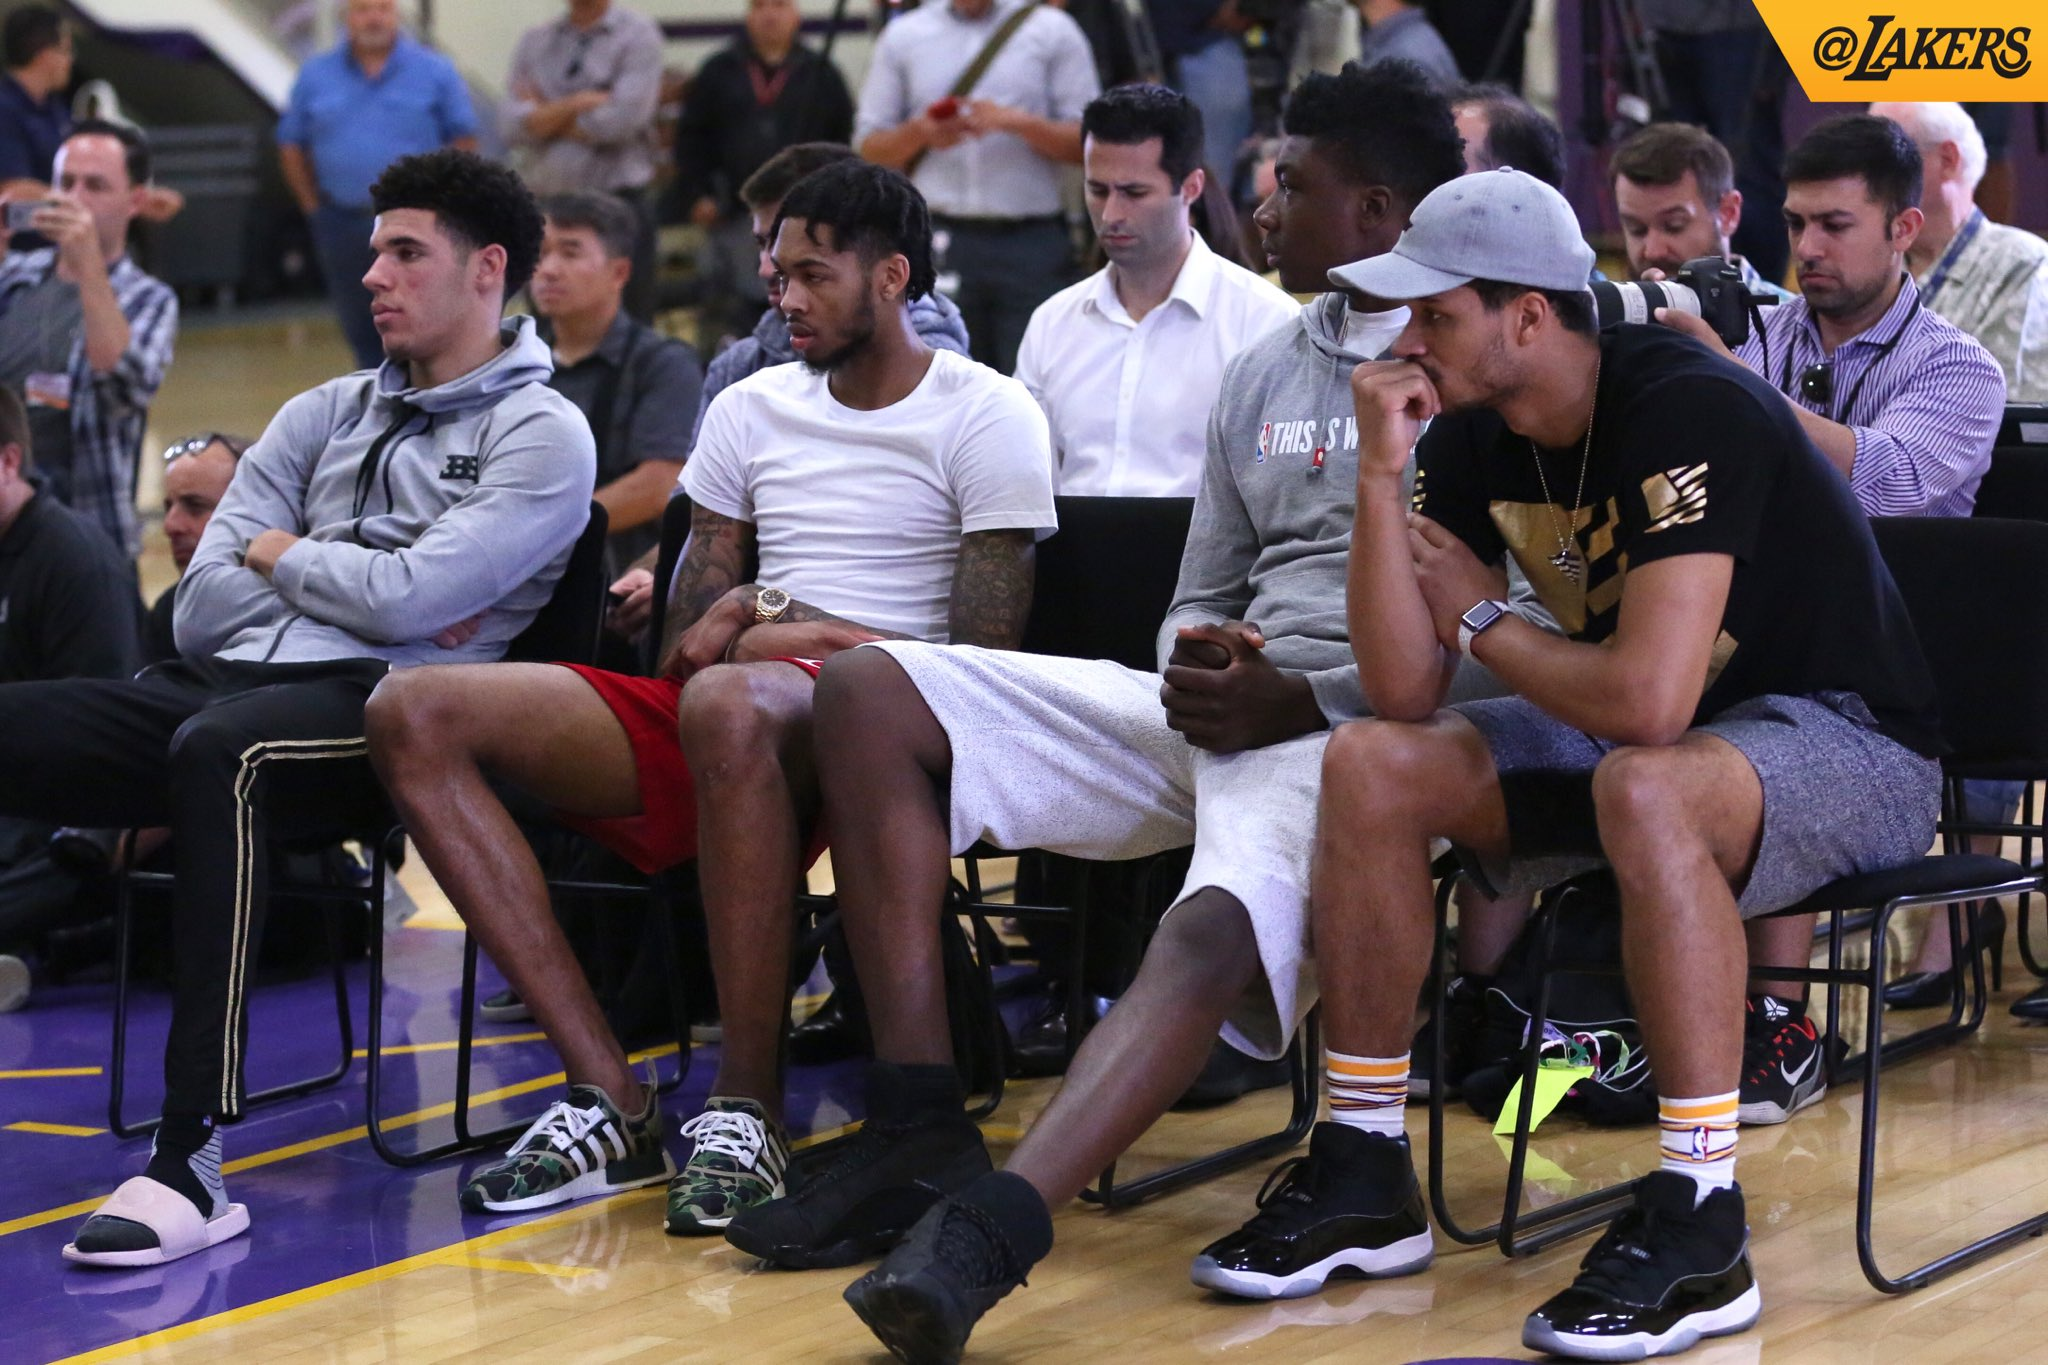 Front row seats for the new family. #LakeShow https://t.co/oEL8Wged8b